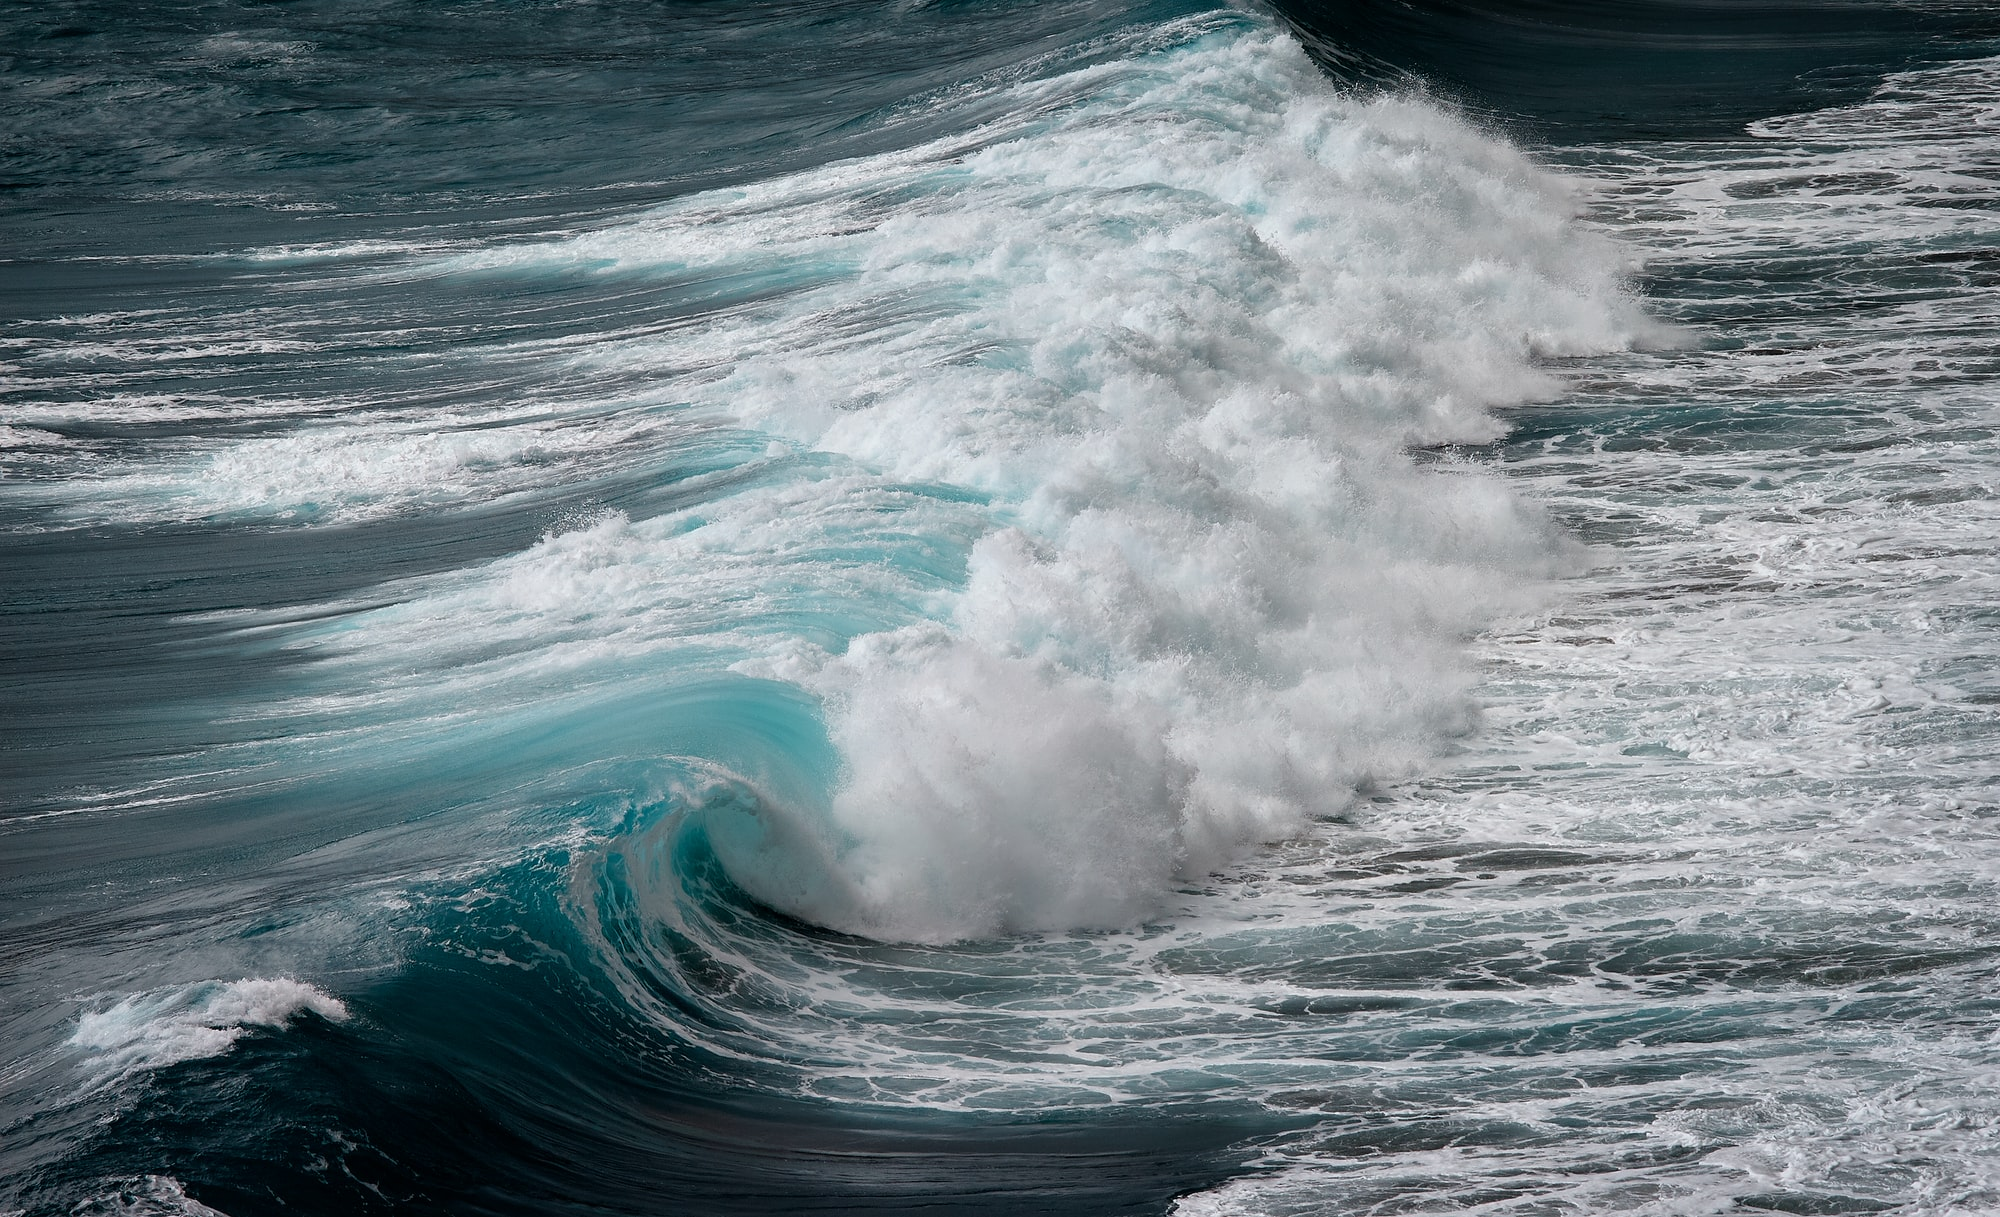 Whitewater 3 – waves of innovation washing onto the shore